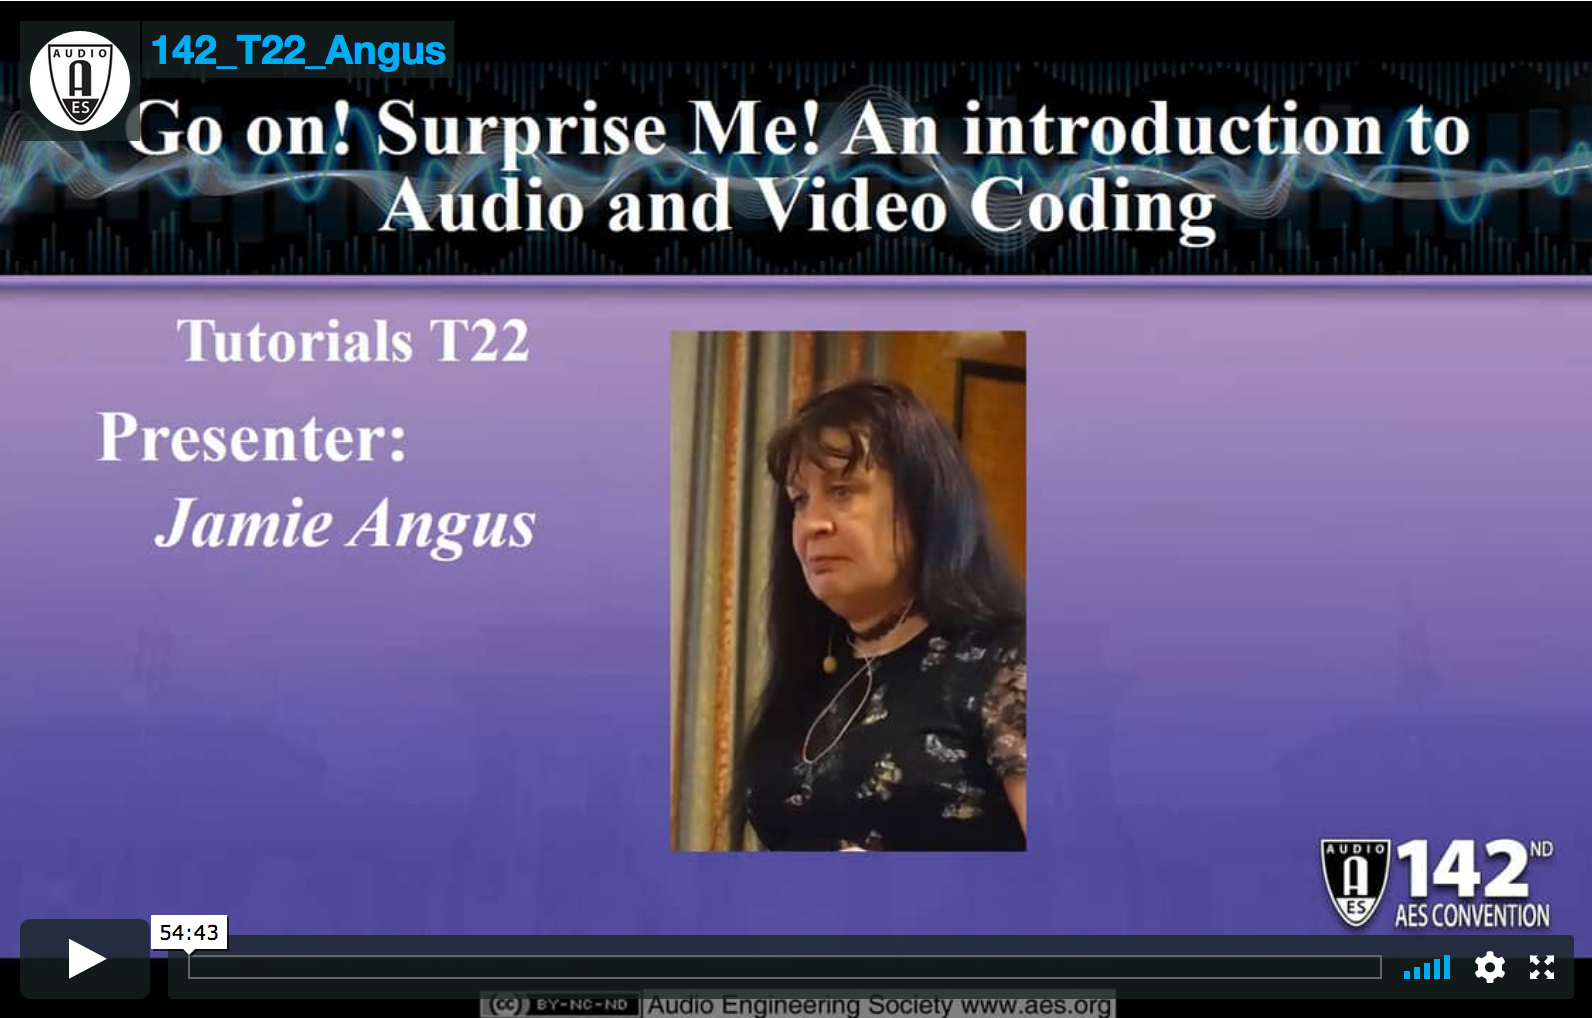 Jamie Angus: Go on! Surprise Me! An introduction to Audio and Video Coding